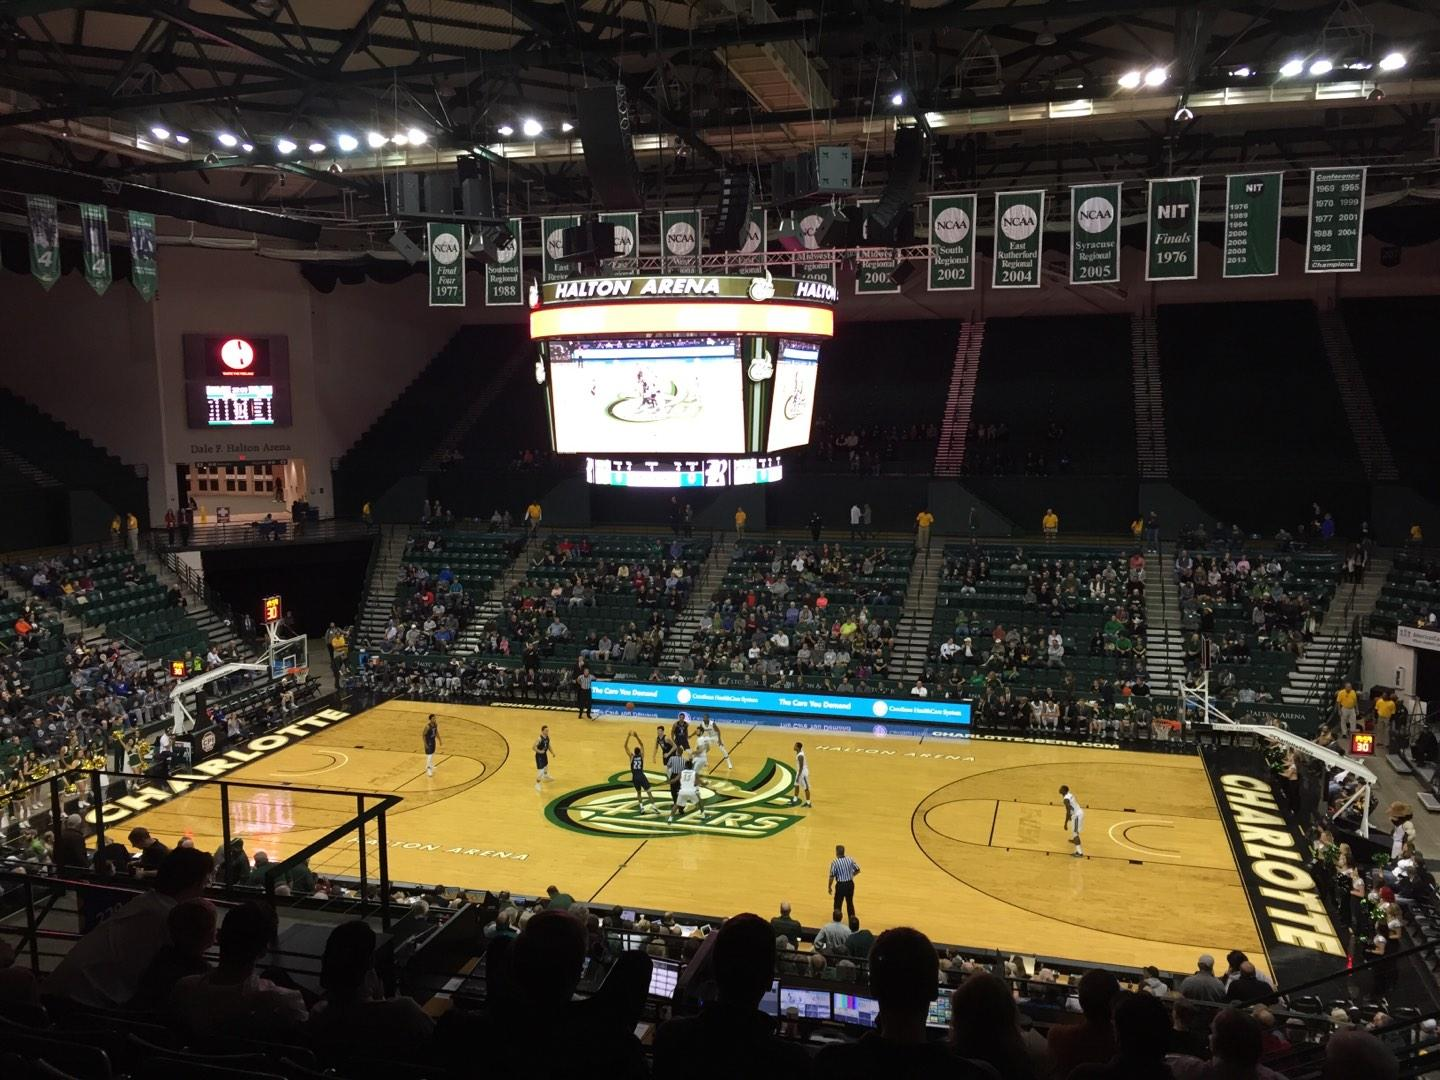 Dale F. Halton Arena Section 220 Row K Seat 5